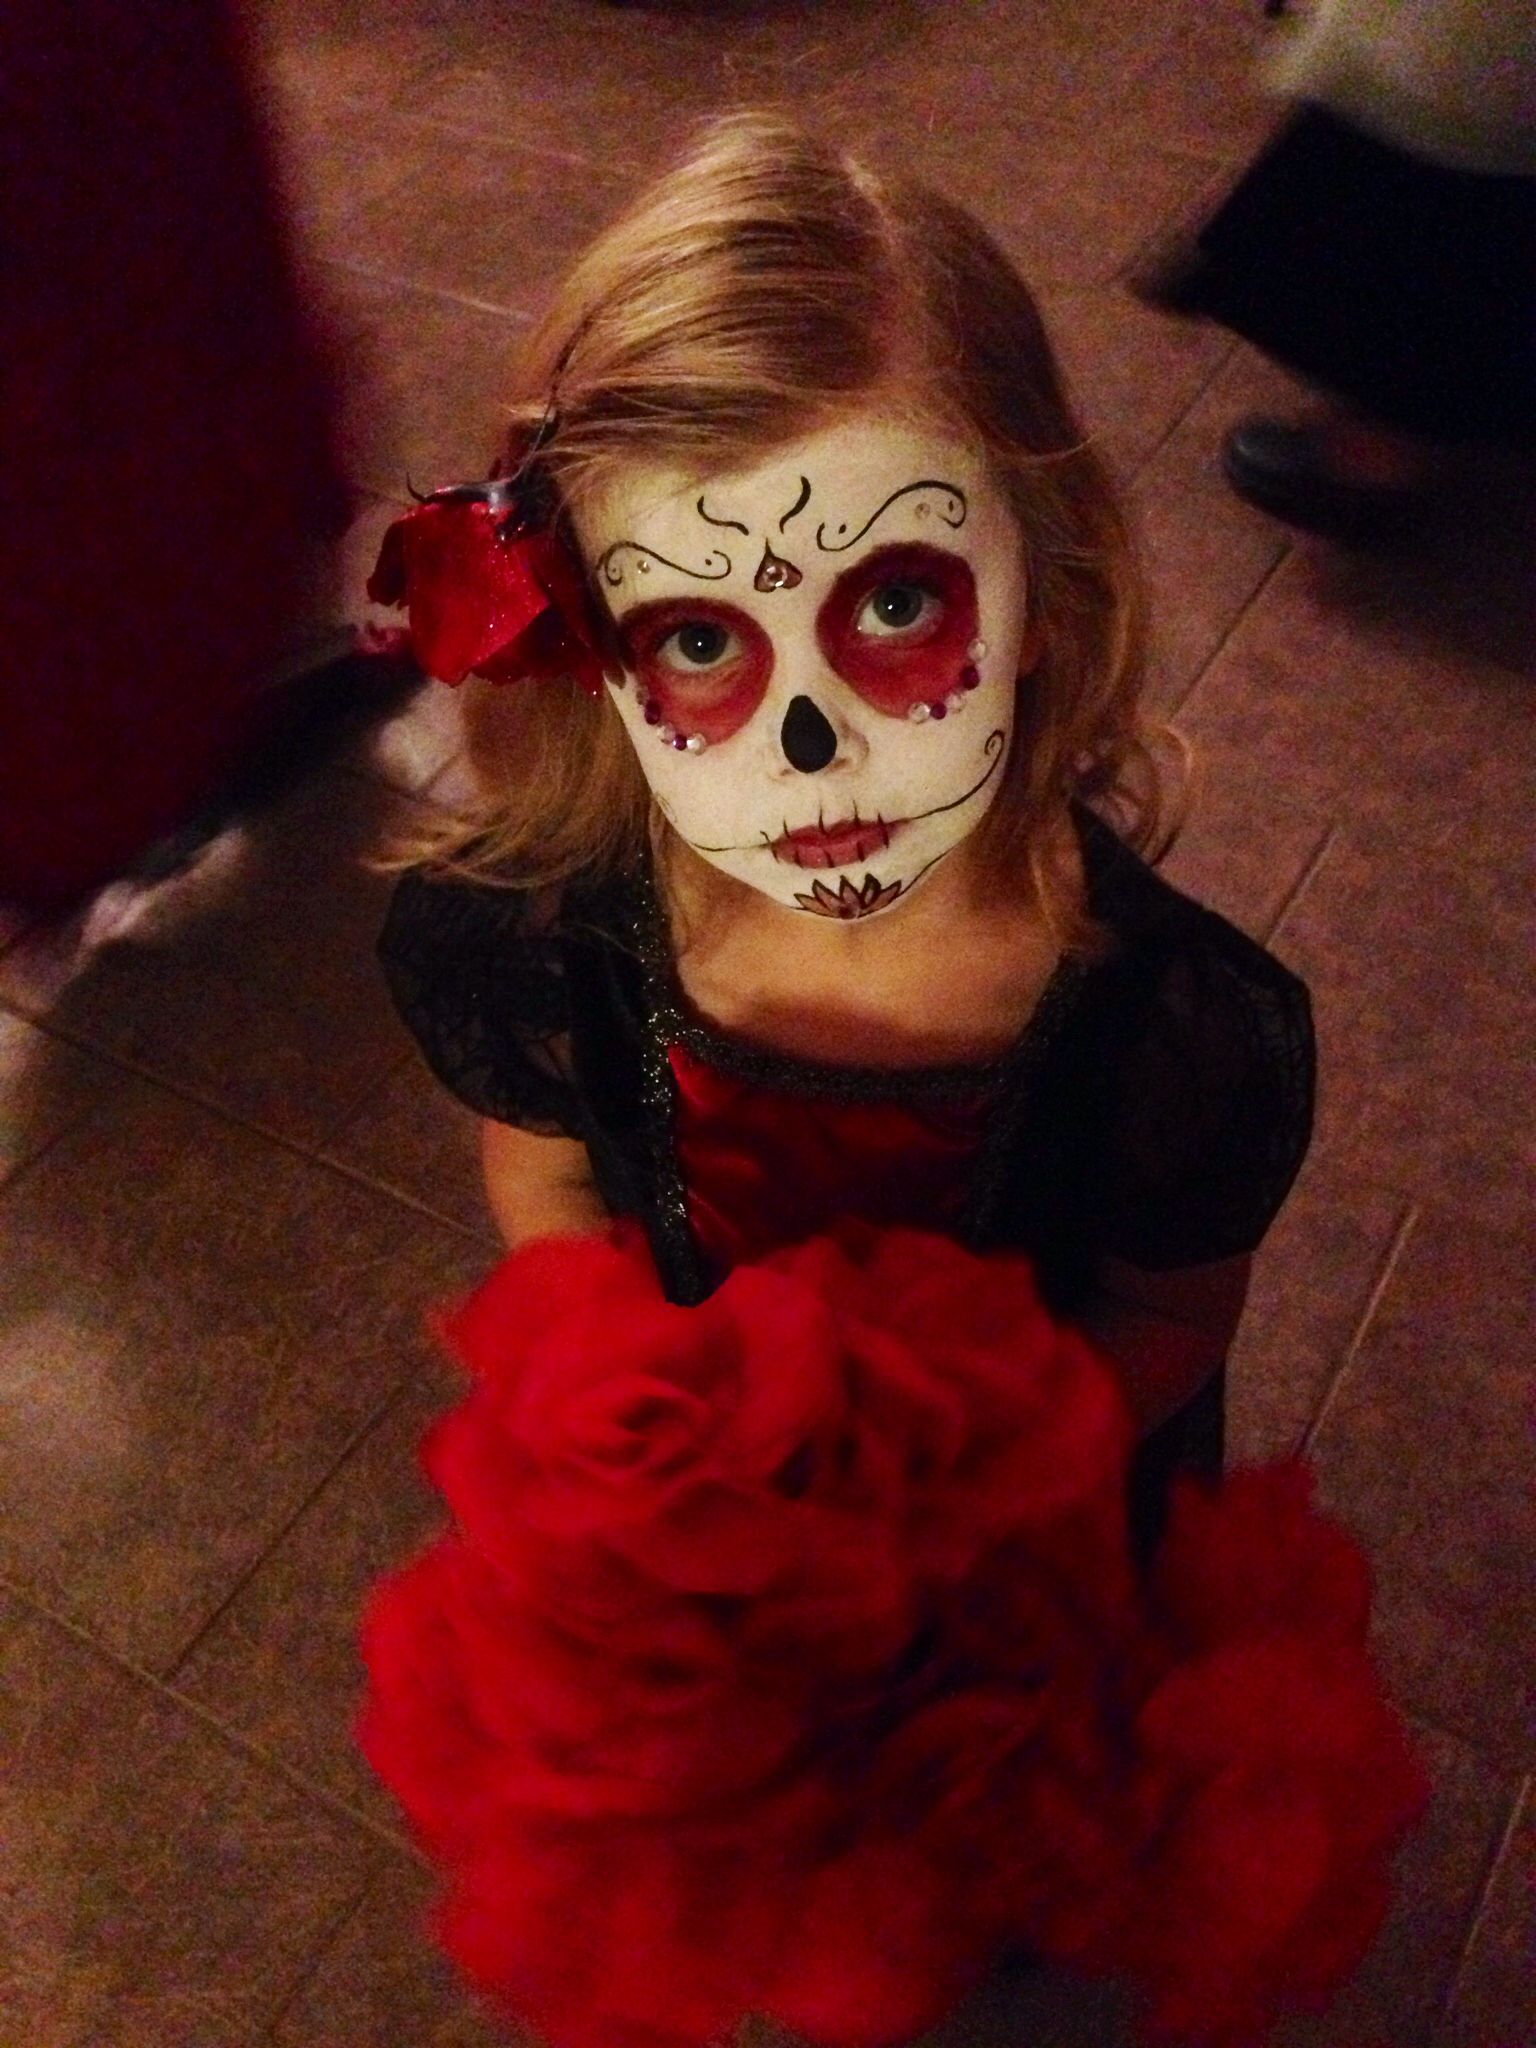 Sugar skull kids makeup | Halloween/Fall | Pinterest | Sugar ...